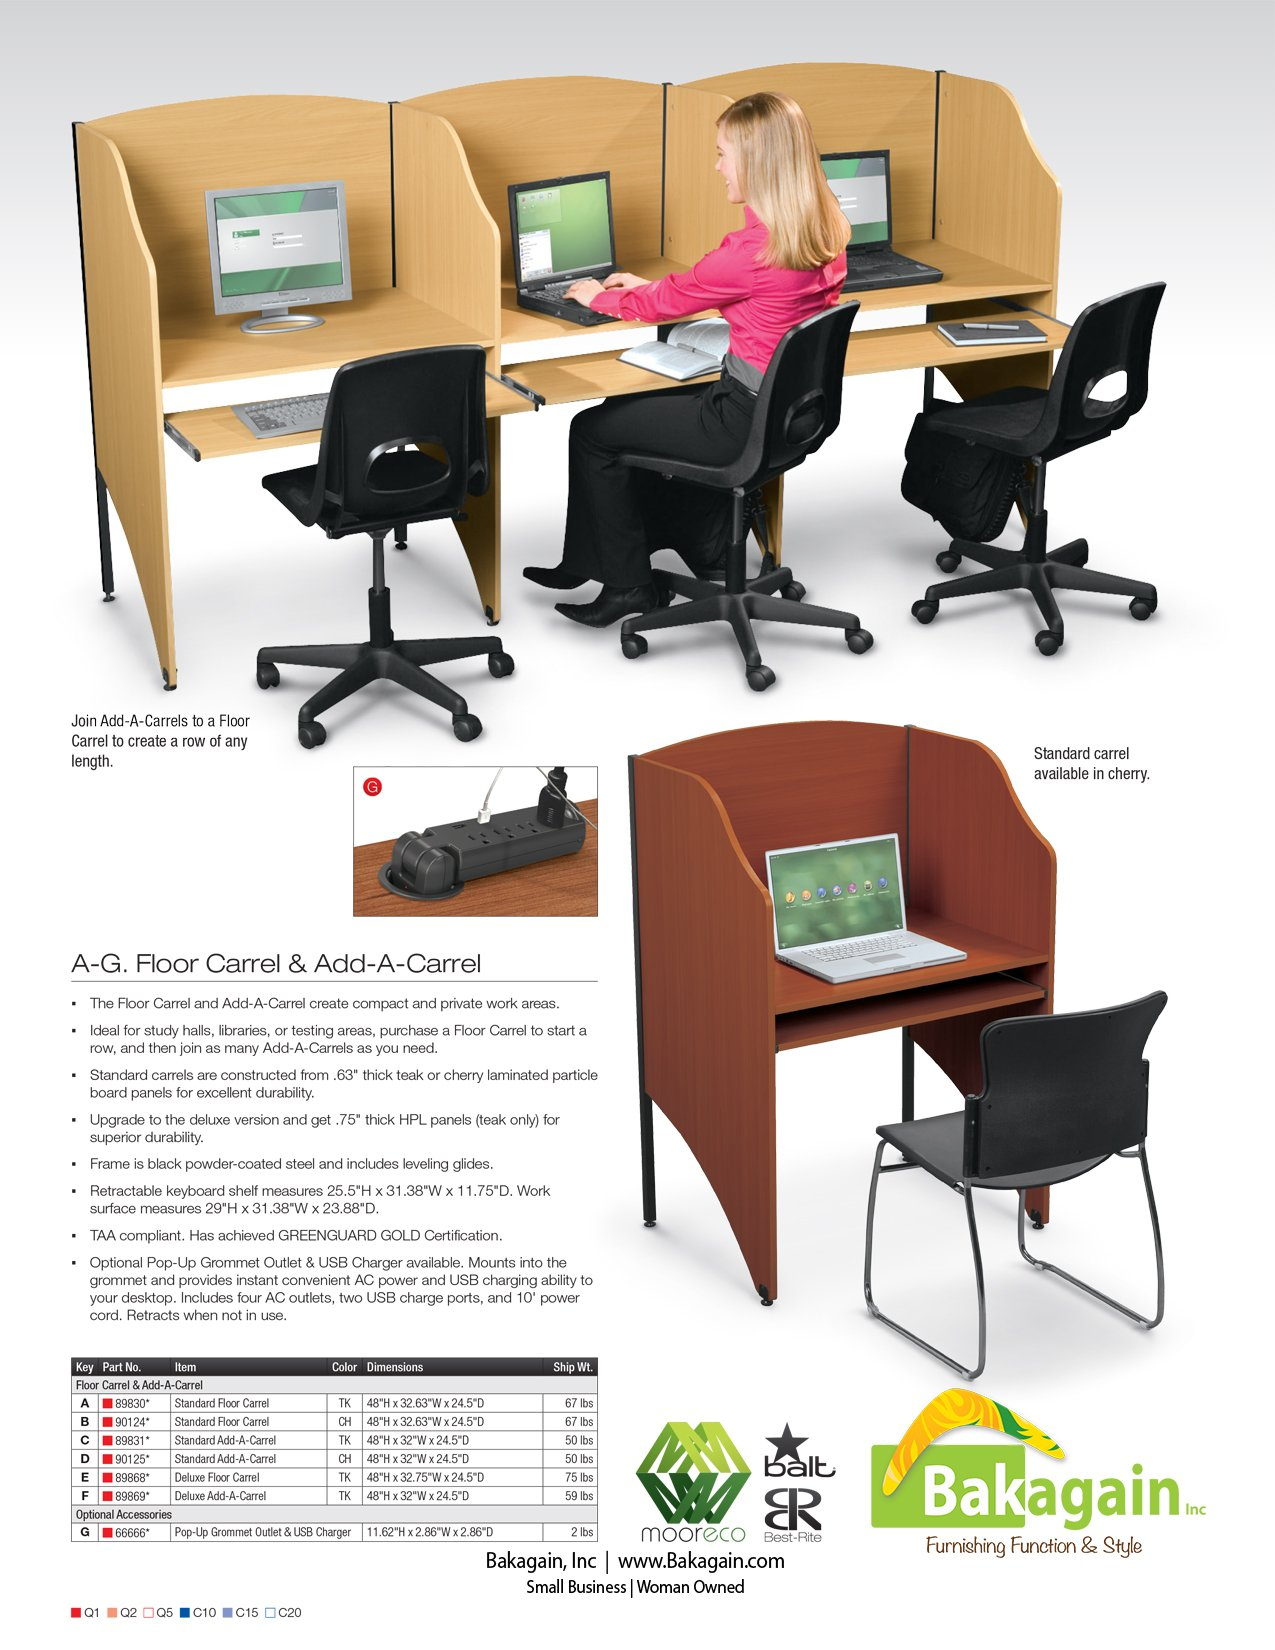 Study Carrel Brochure